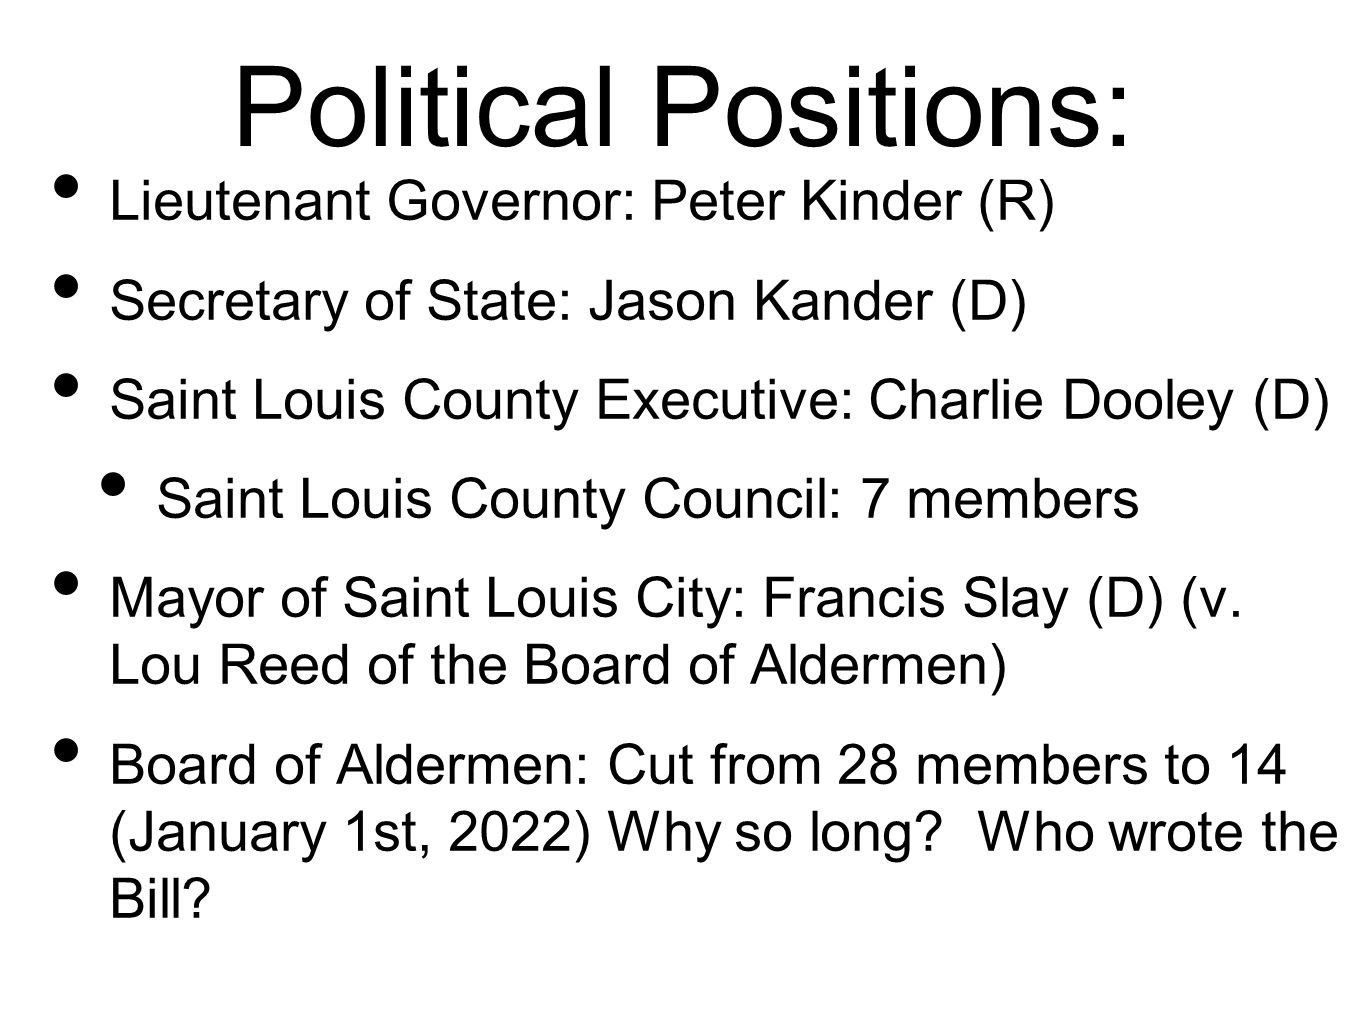 Political Positions: Lieutenant Governor: Peter Kinder (R) Secretary of State: Jason Kander (D) Saint Louis County Executive: Charlie Dooley (D) Saint Louis County Council: 7 members Mayor of Saint Louis City: Francis Slay (D) (v.